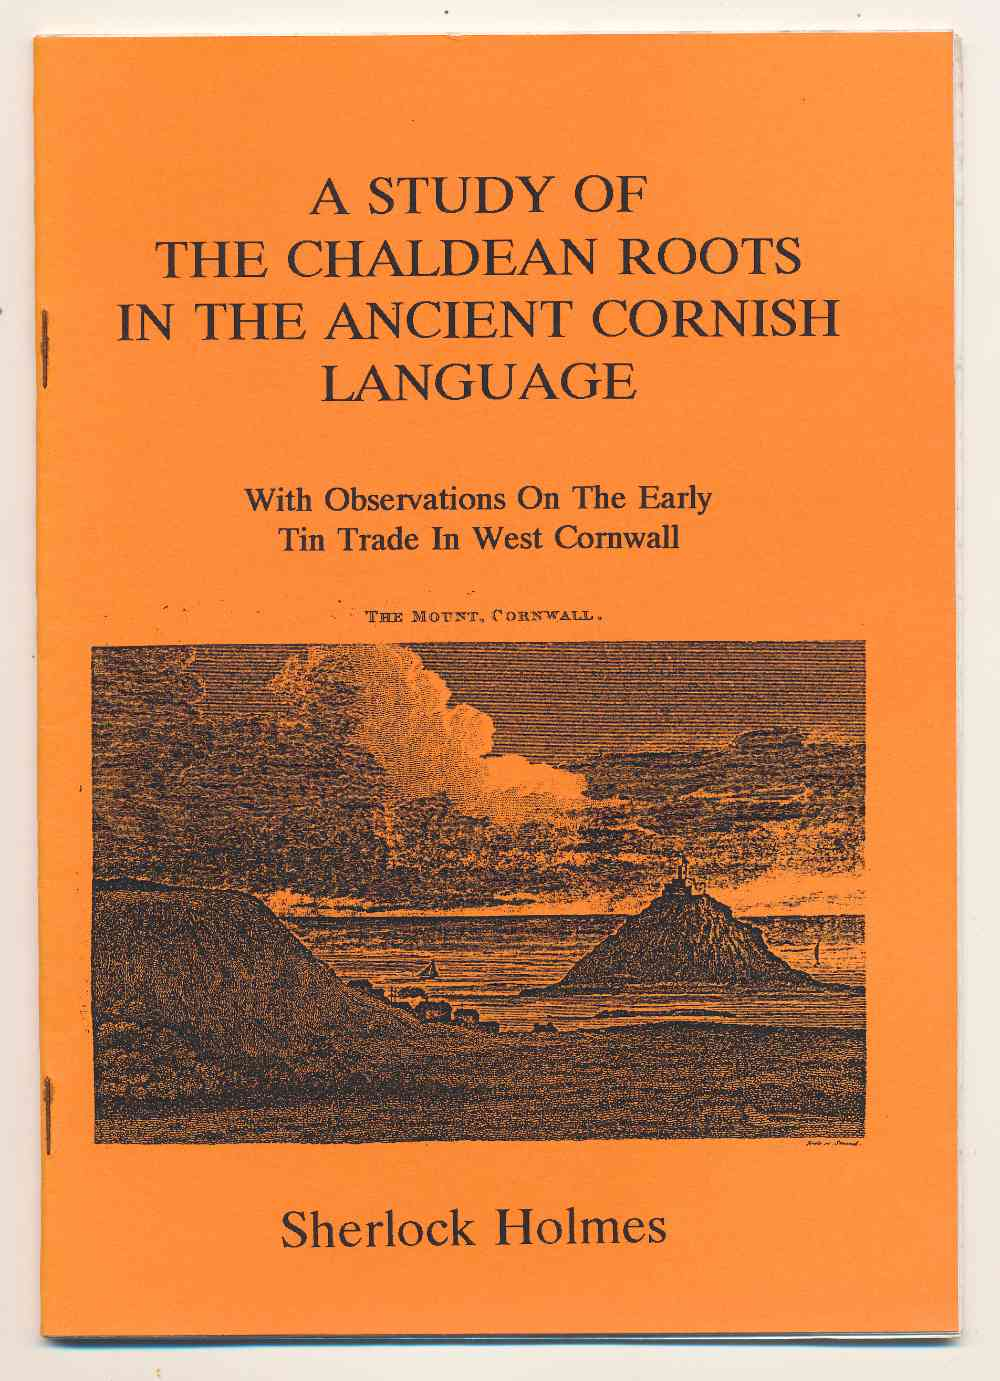 A study of the Chaldean roots in the ancient Cornish language, with observations on the early tin trade in West Cornwall